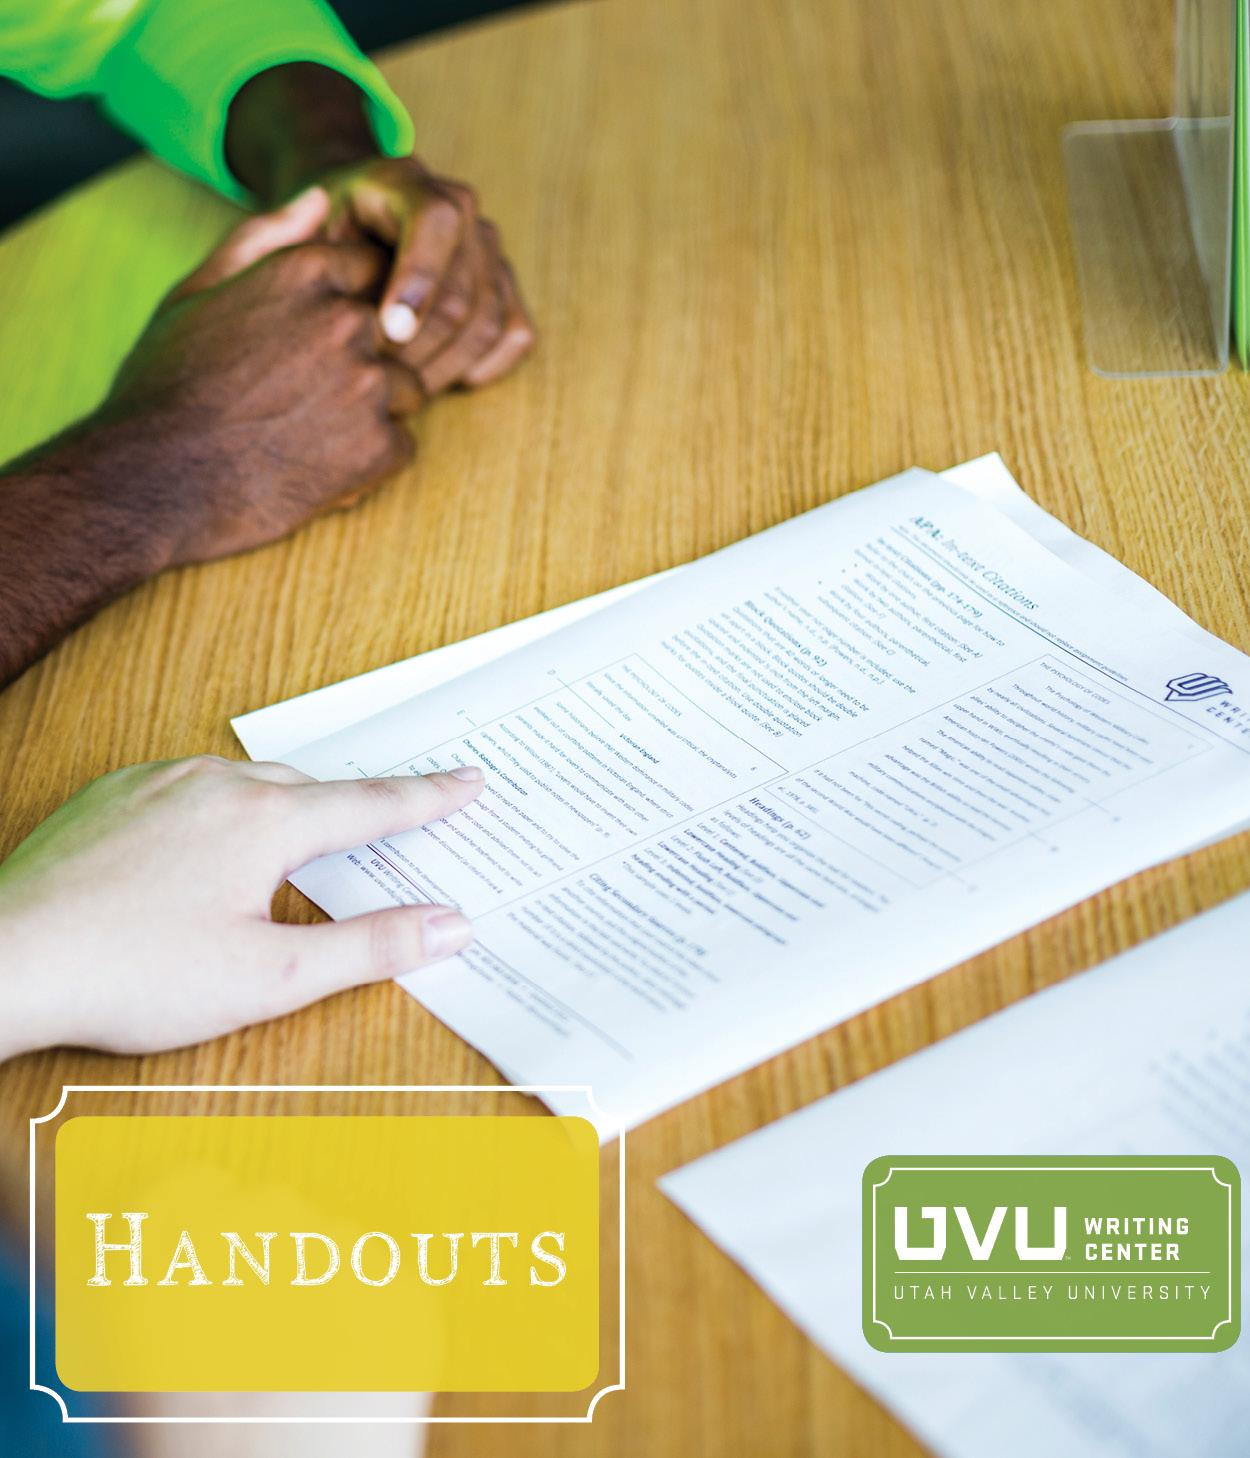 Image of tutor showing student a handout